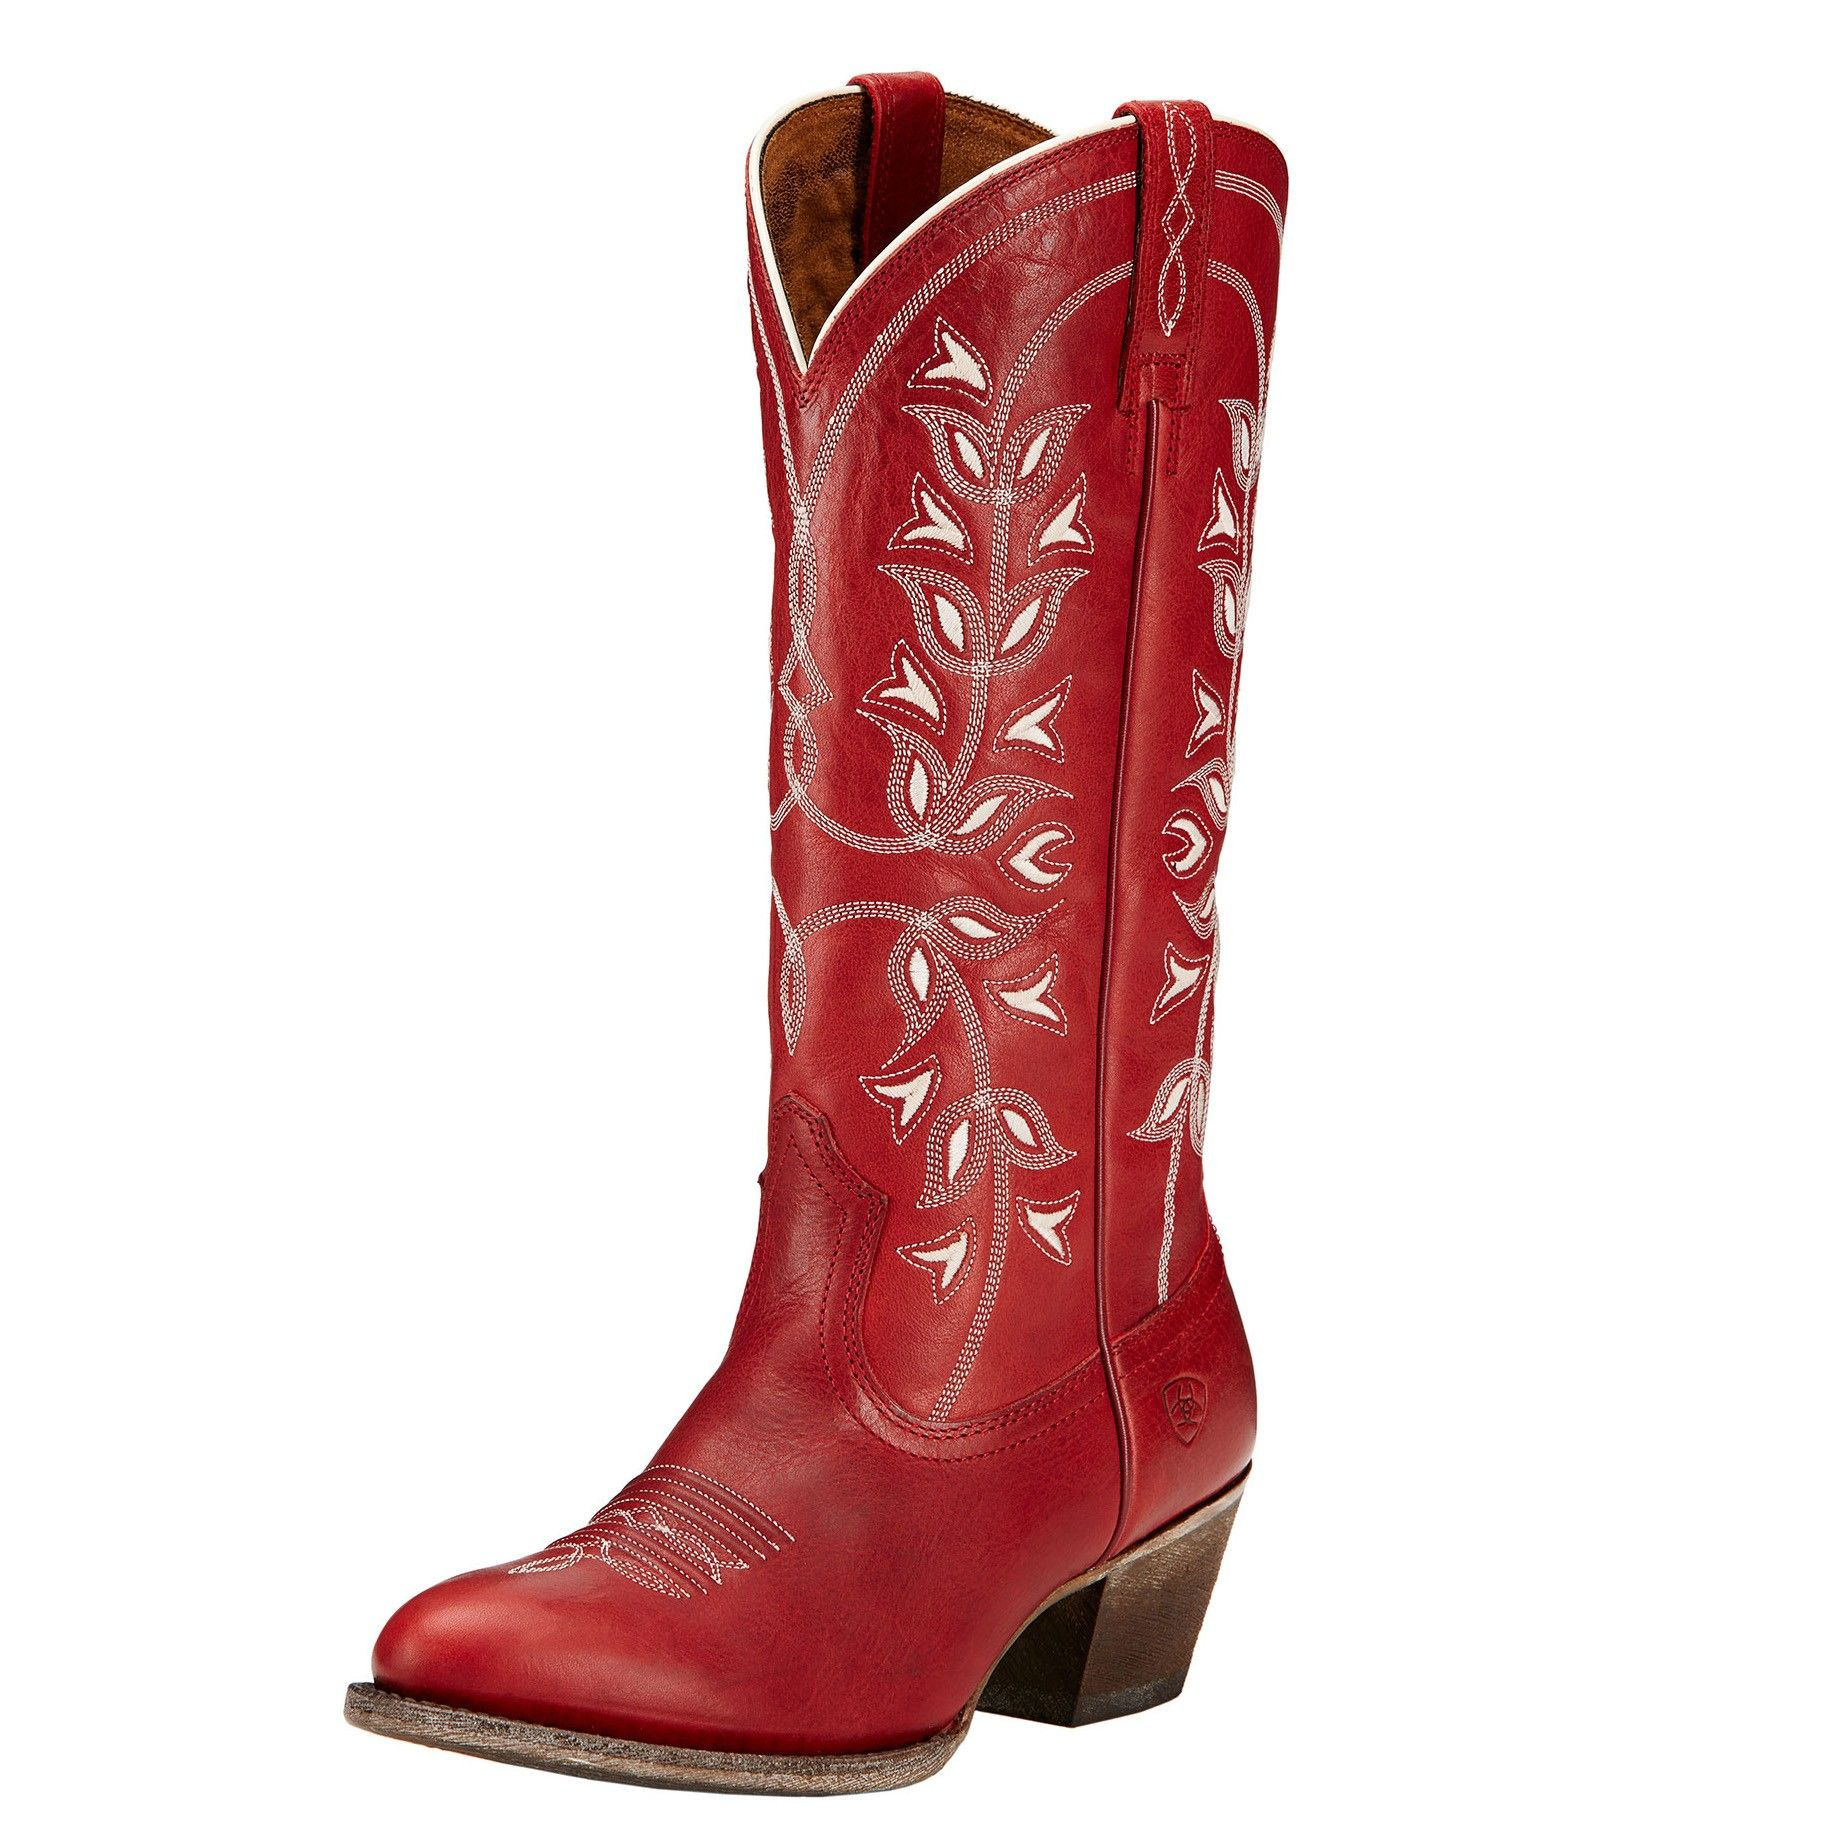 9dd9569b415 Ariat Womens Desert Holly Round Toe Cowboy Boots Rosy Red